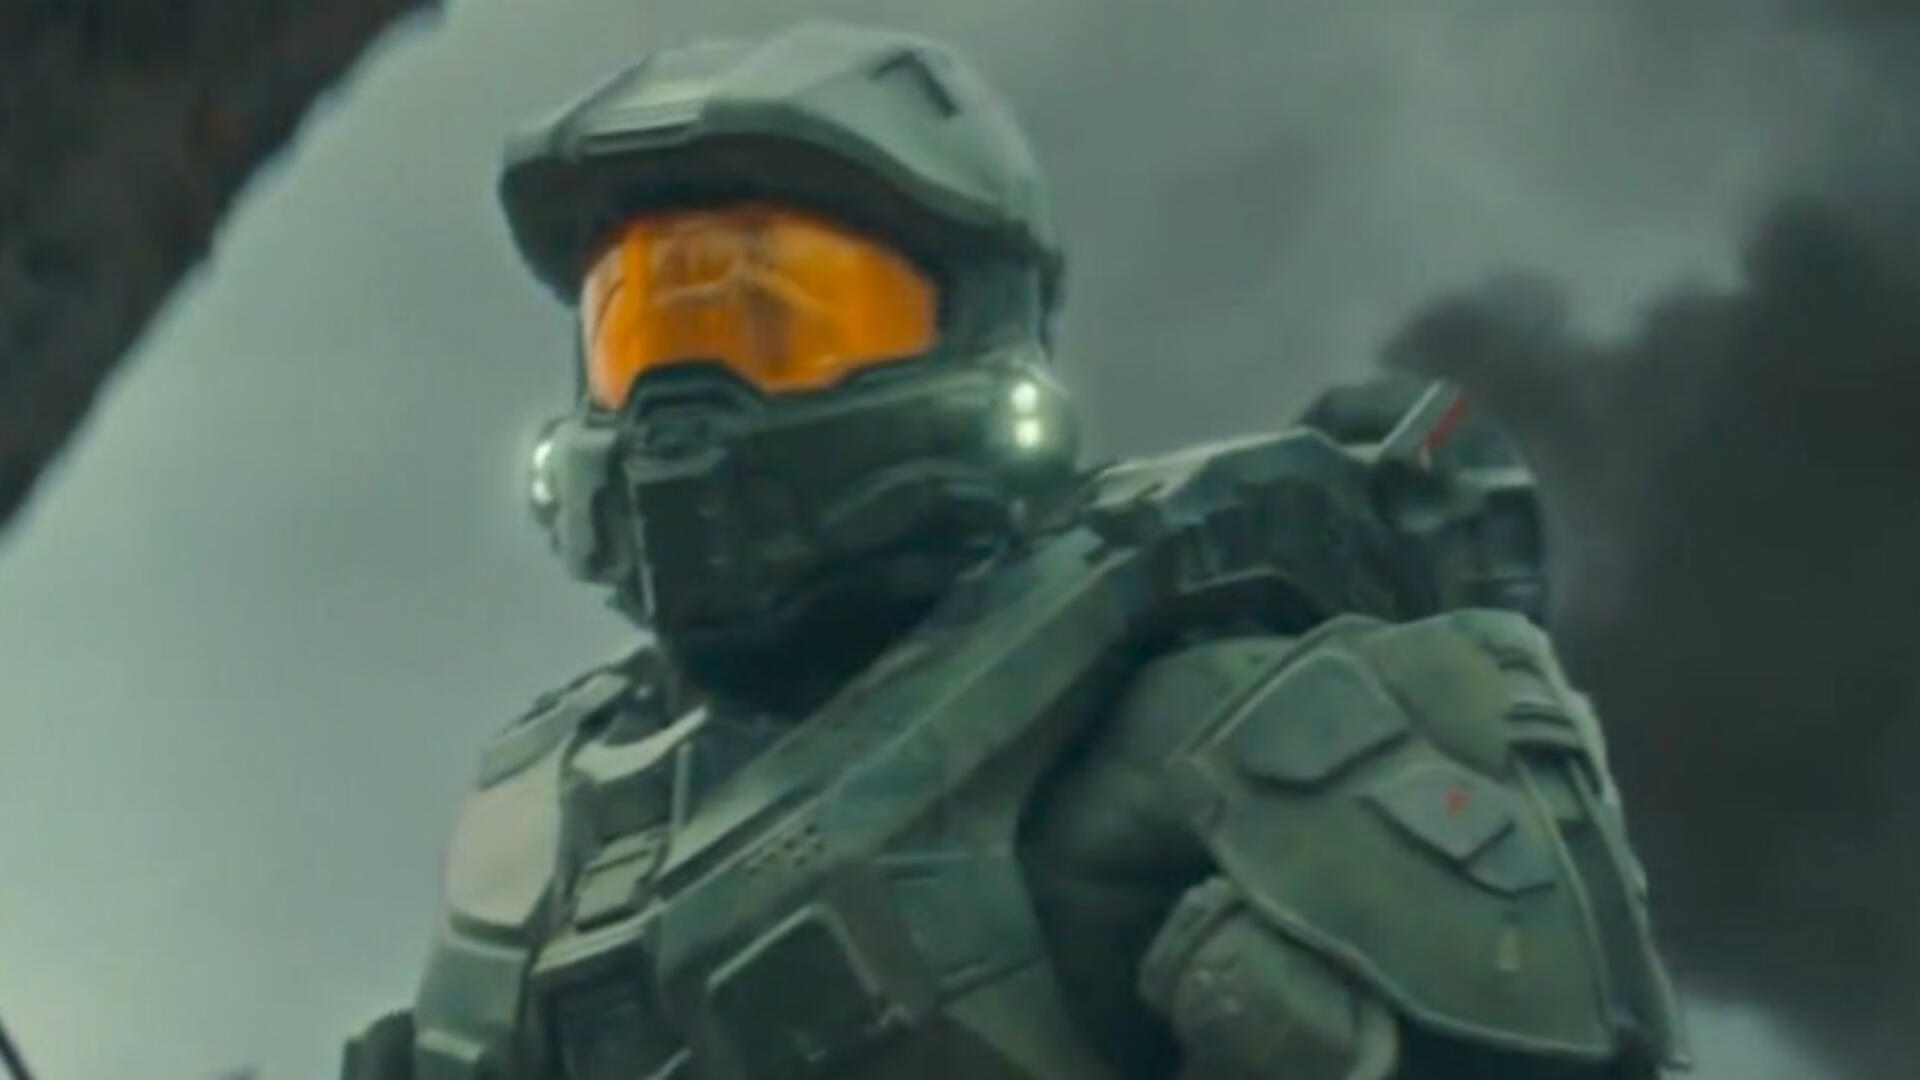 """Halo TV Show Still """"In Development"""" According to Showtime President"""